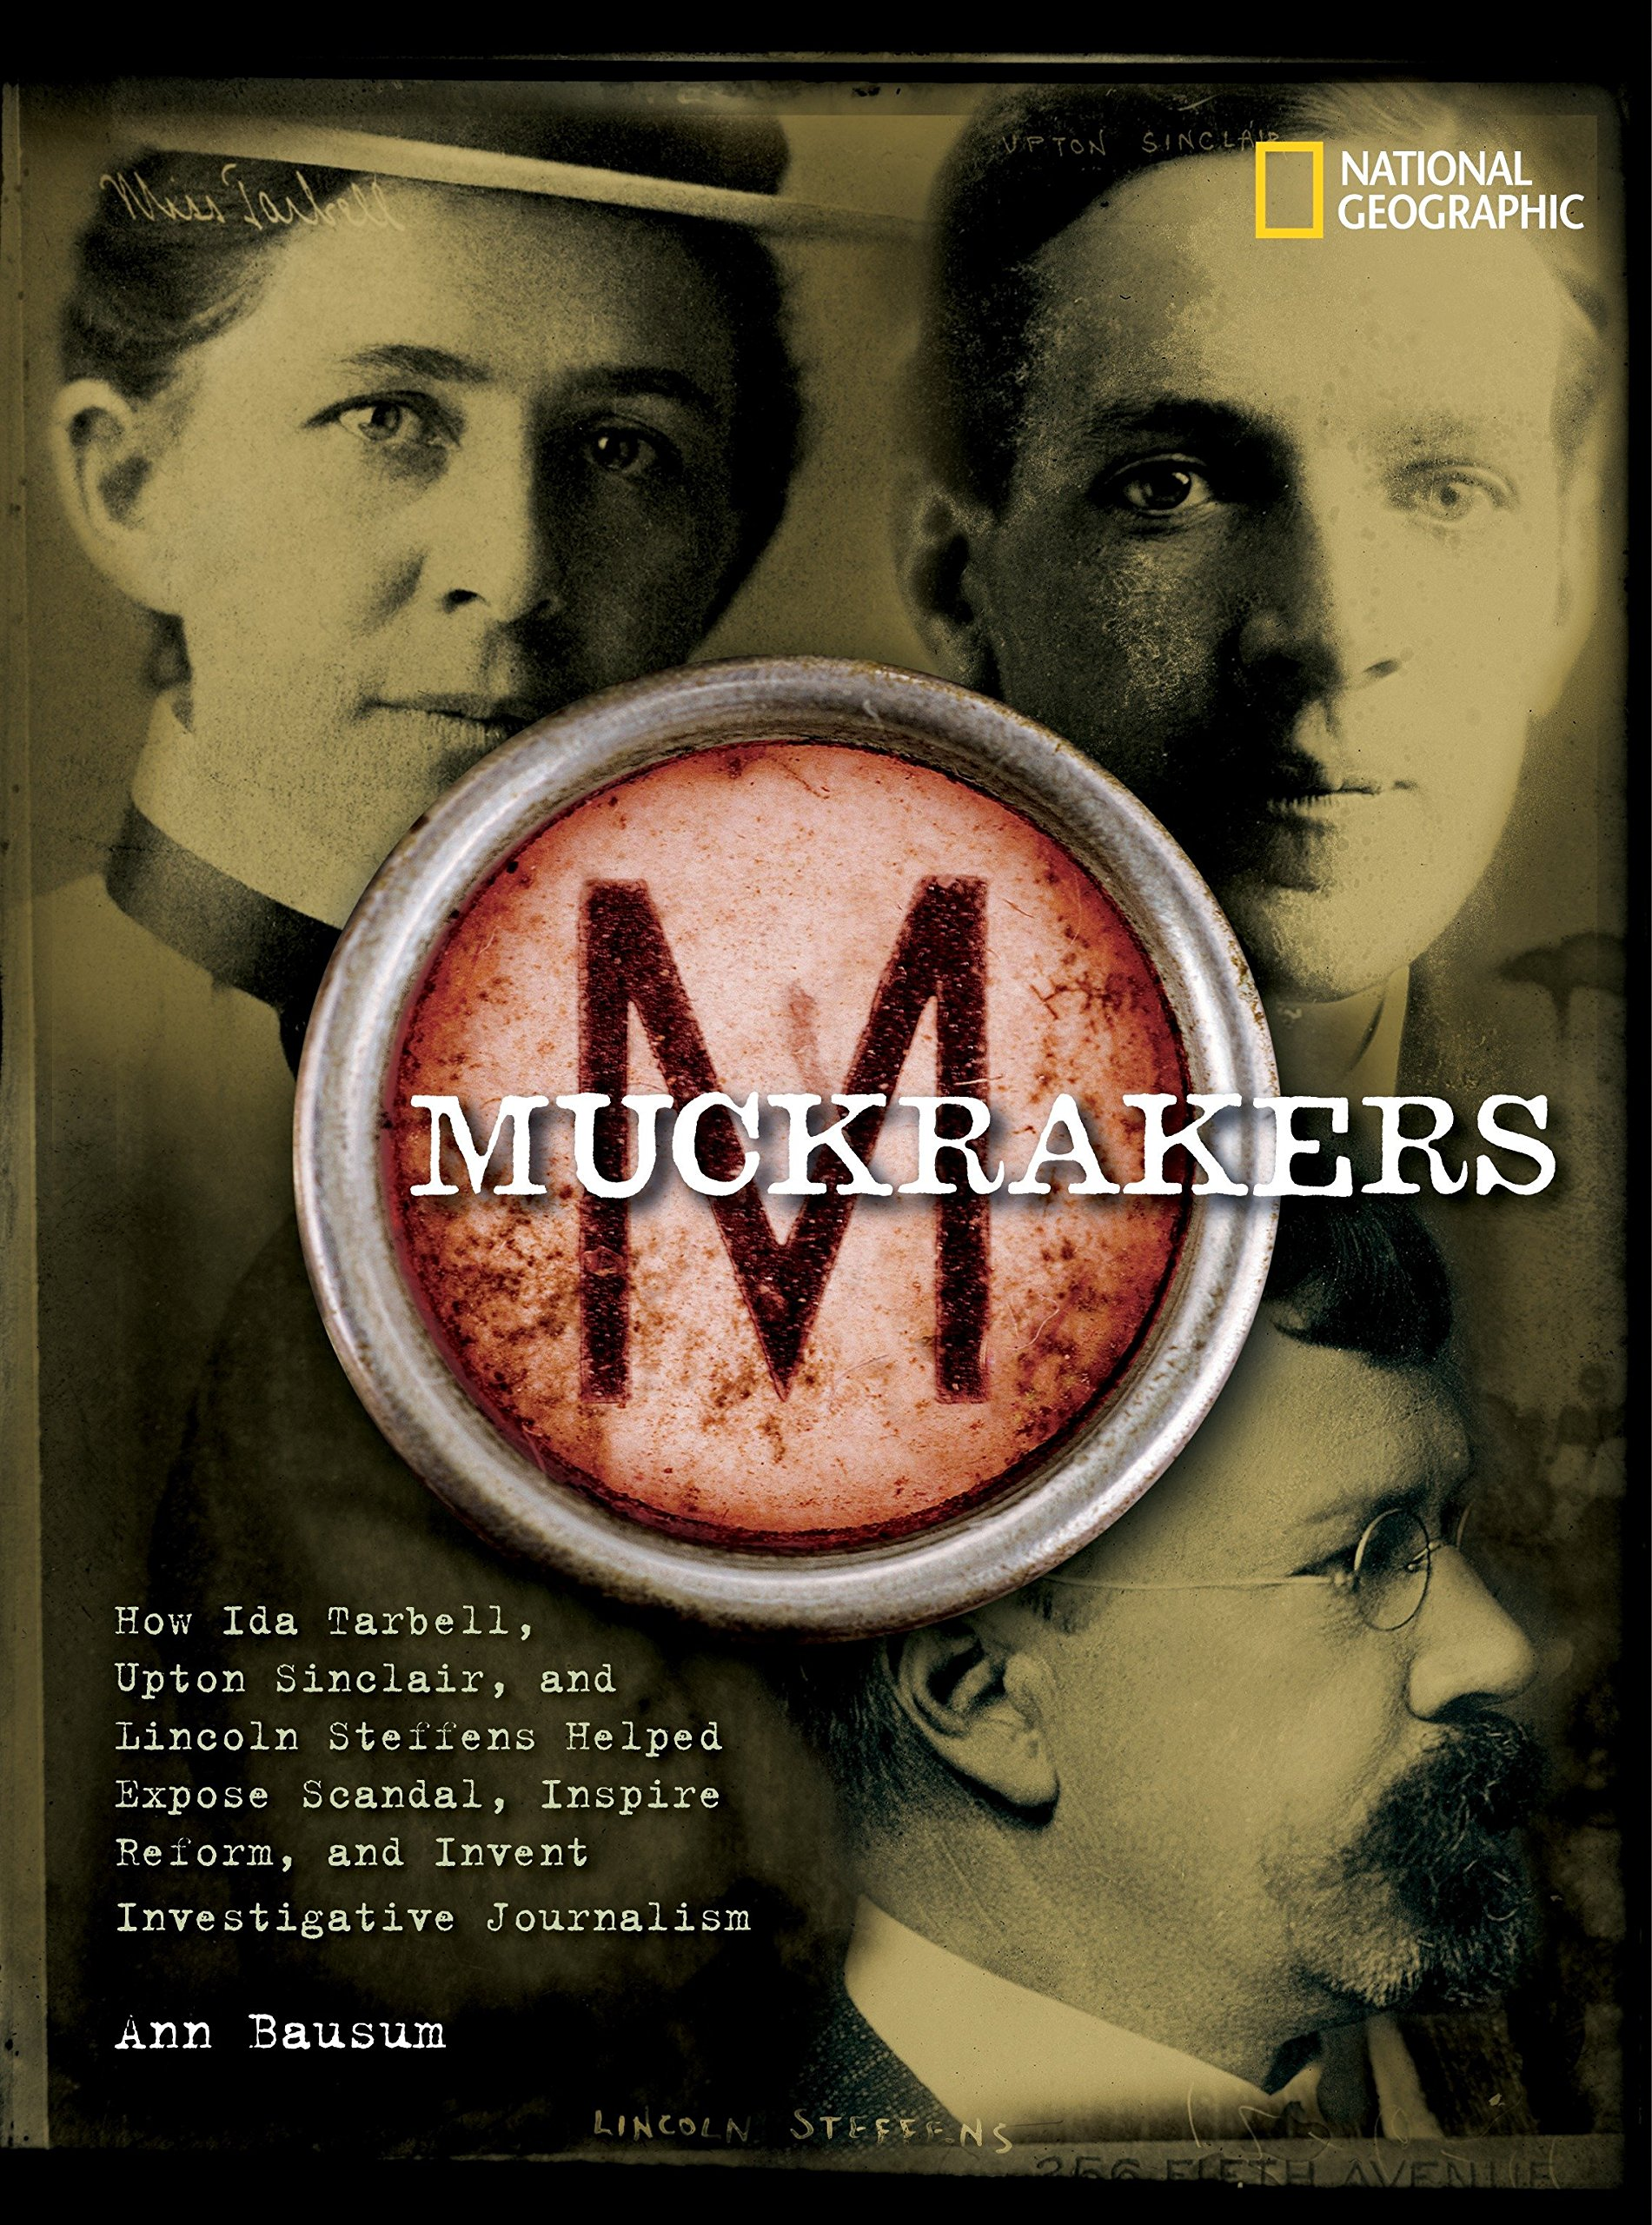 Muckrakers: How Ida Tarbell, Upton Sinclair, and Lincoln Steffens Helped Expose Scandal, Inspire Reform, and Invent Investigative Journalism (World History Biographies)